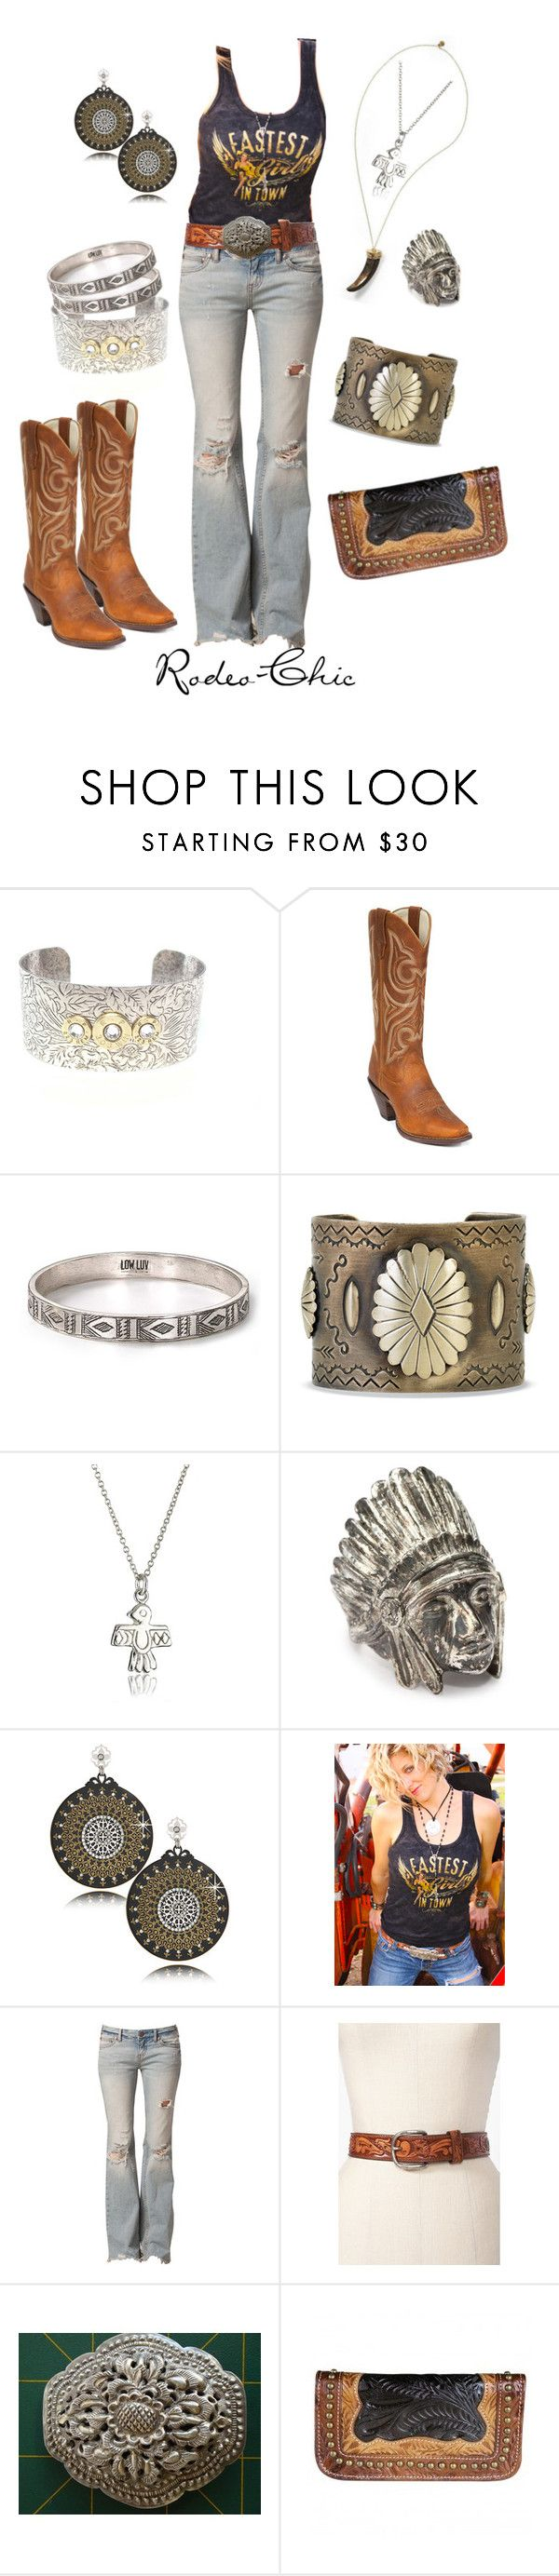 """Fasest Girl In Town"" by rodeo-chic ❤ liked on Polyvore featuring Durango, LowLuv, House of Harlow 1960, Chibi Jewels, LK Designs, Junk Gypsy, Free People, distressed jeans, distressed denim and cowboy boots"